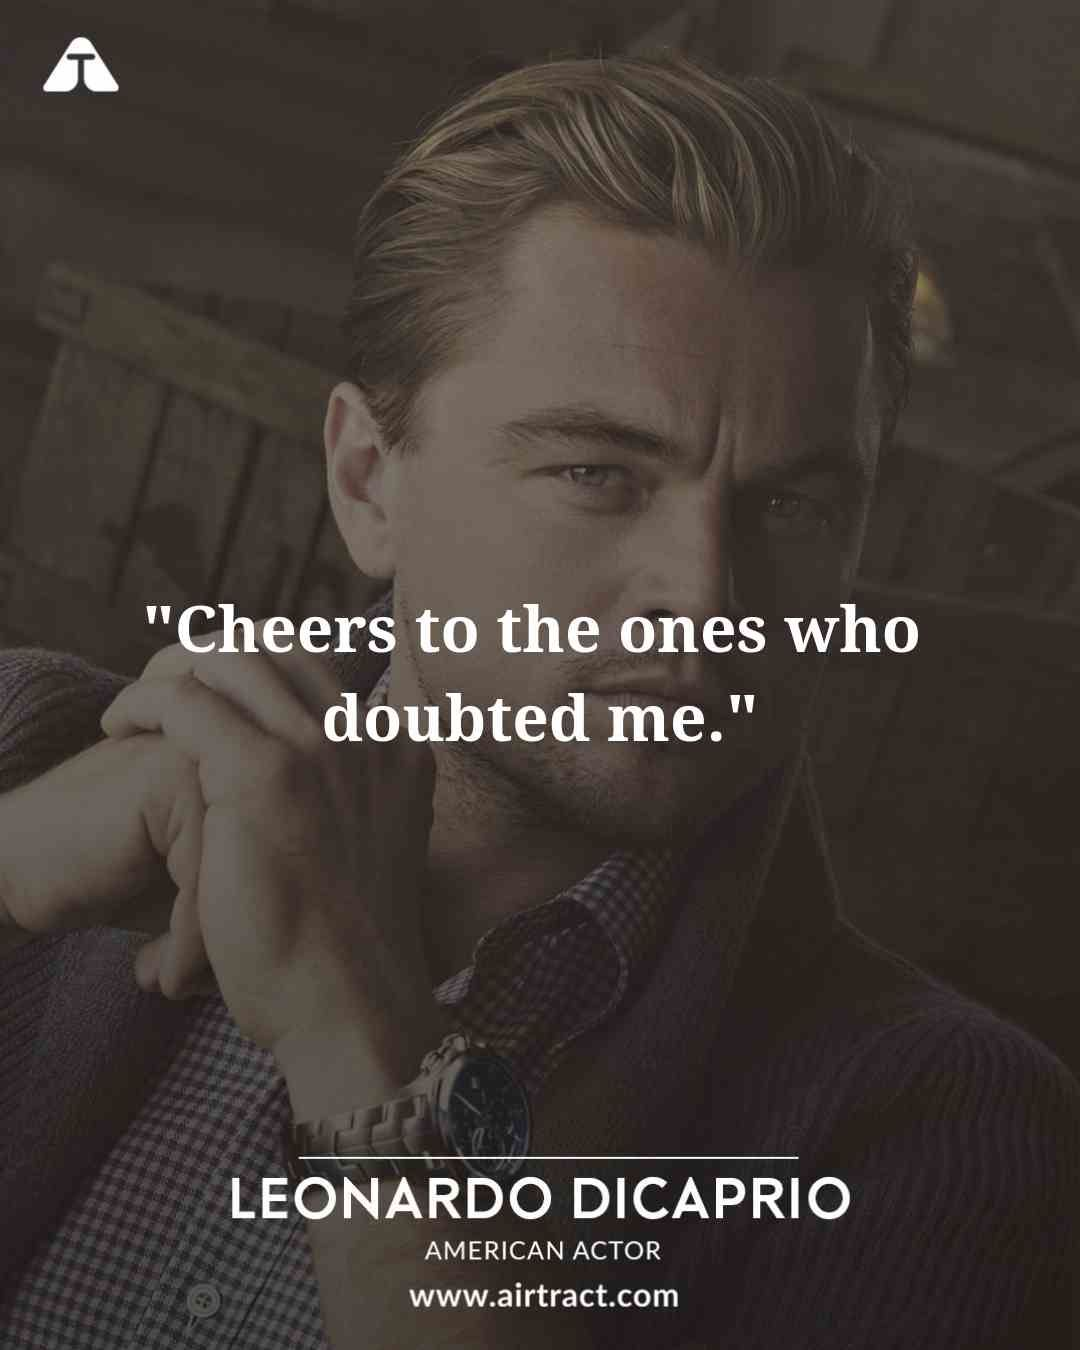 Cheer To The Ones Who Doubted Me Leonardo Dicaprio Leonardodicaprio Leonardodicapriofacts Leonardodi Leonardo Dicaprio Quotes Leonardo Dicaprio Leo Quotes